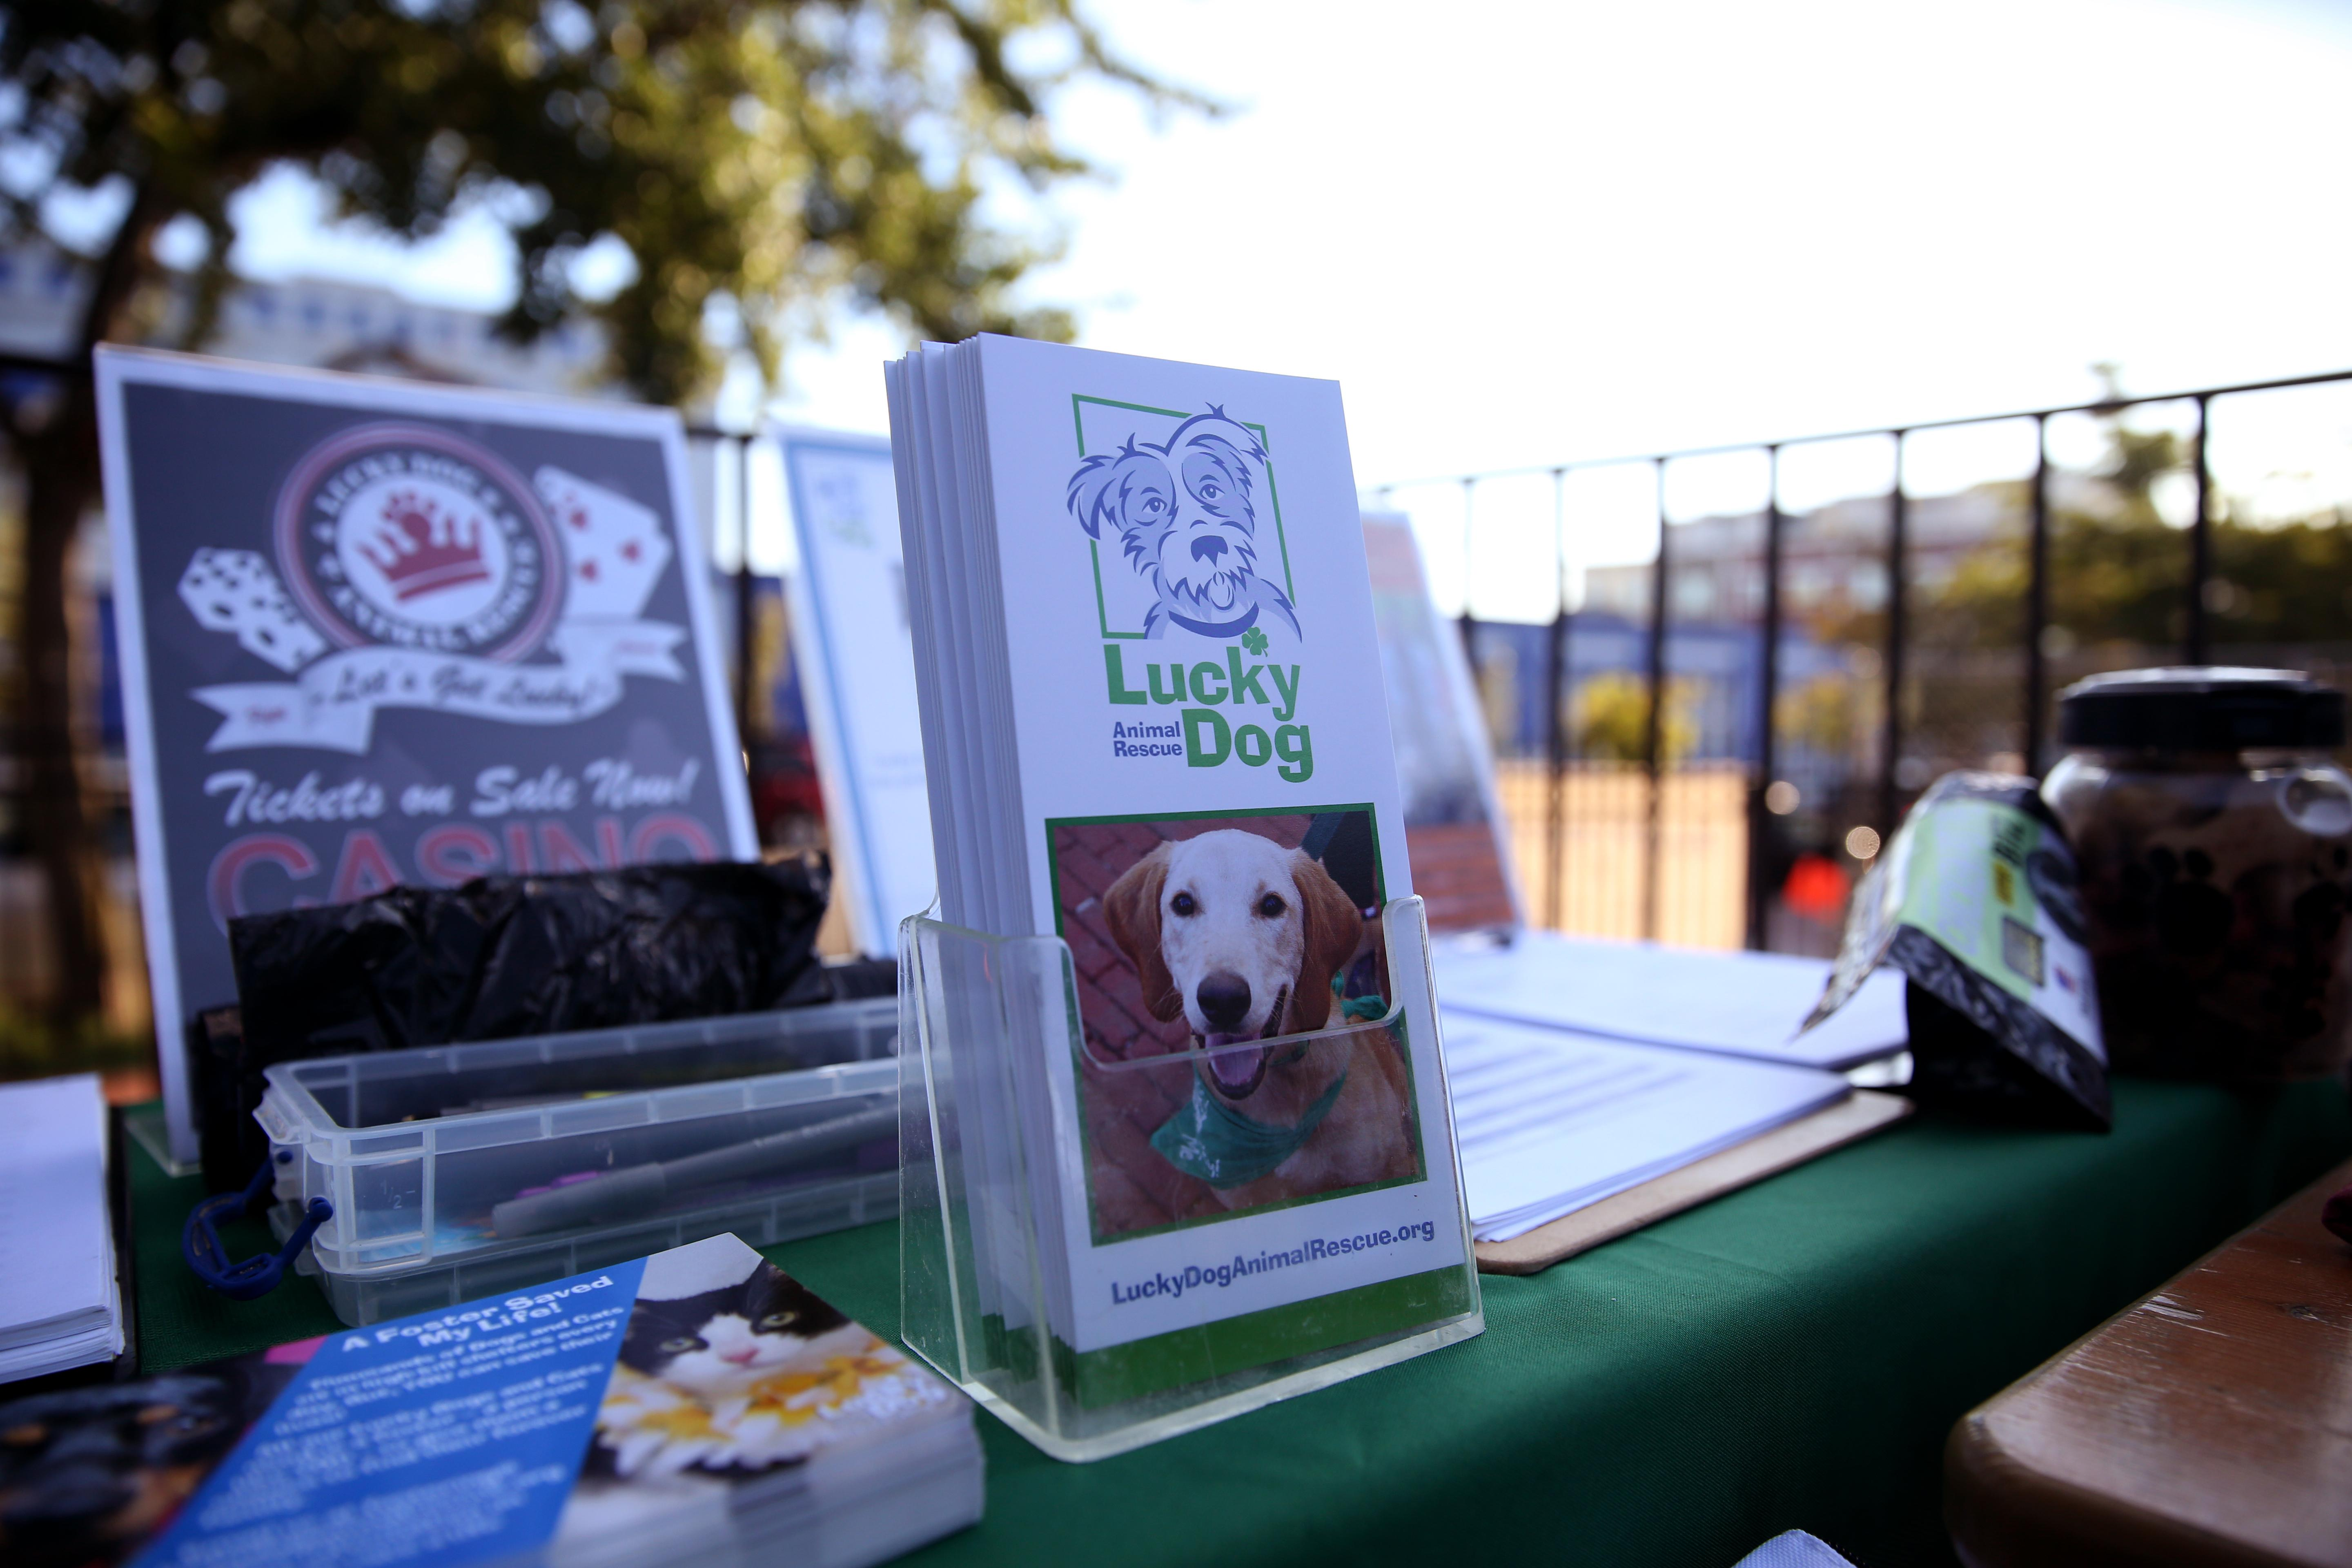 Our event  at The Brig came together with help from Lucky Dog Rescue, Devils Backbone Brewing Company and DogMa. (Amanda Andrade-Rhoades/DC Refined)